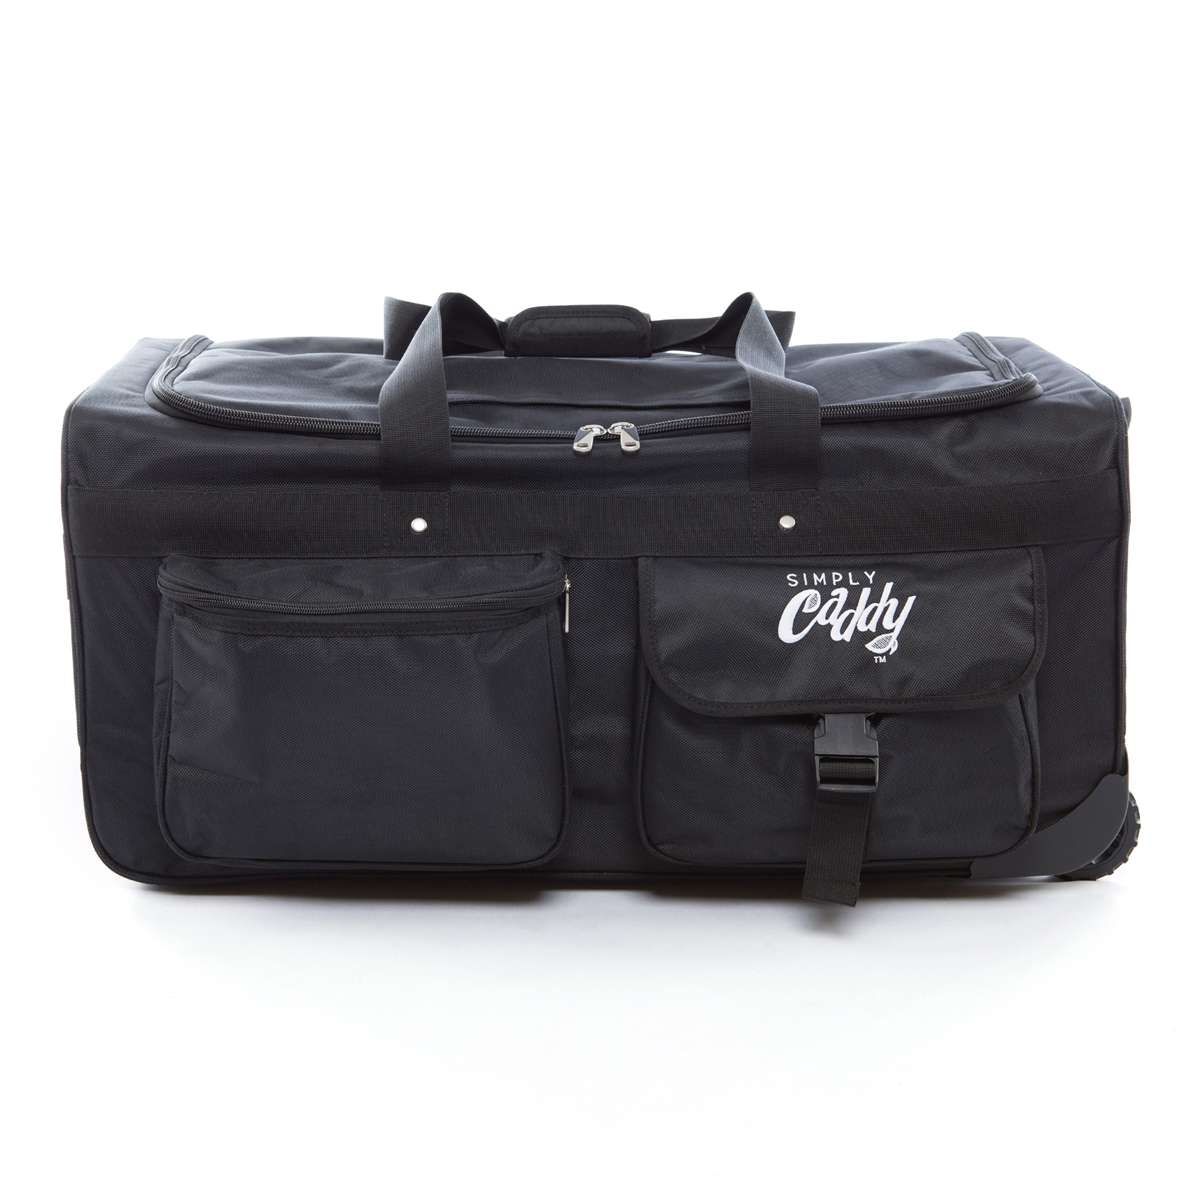 The Caddy Bag Is Ultimate Duffel With Wheels And A Side Hanging Garment Rack